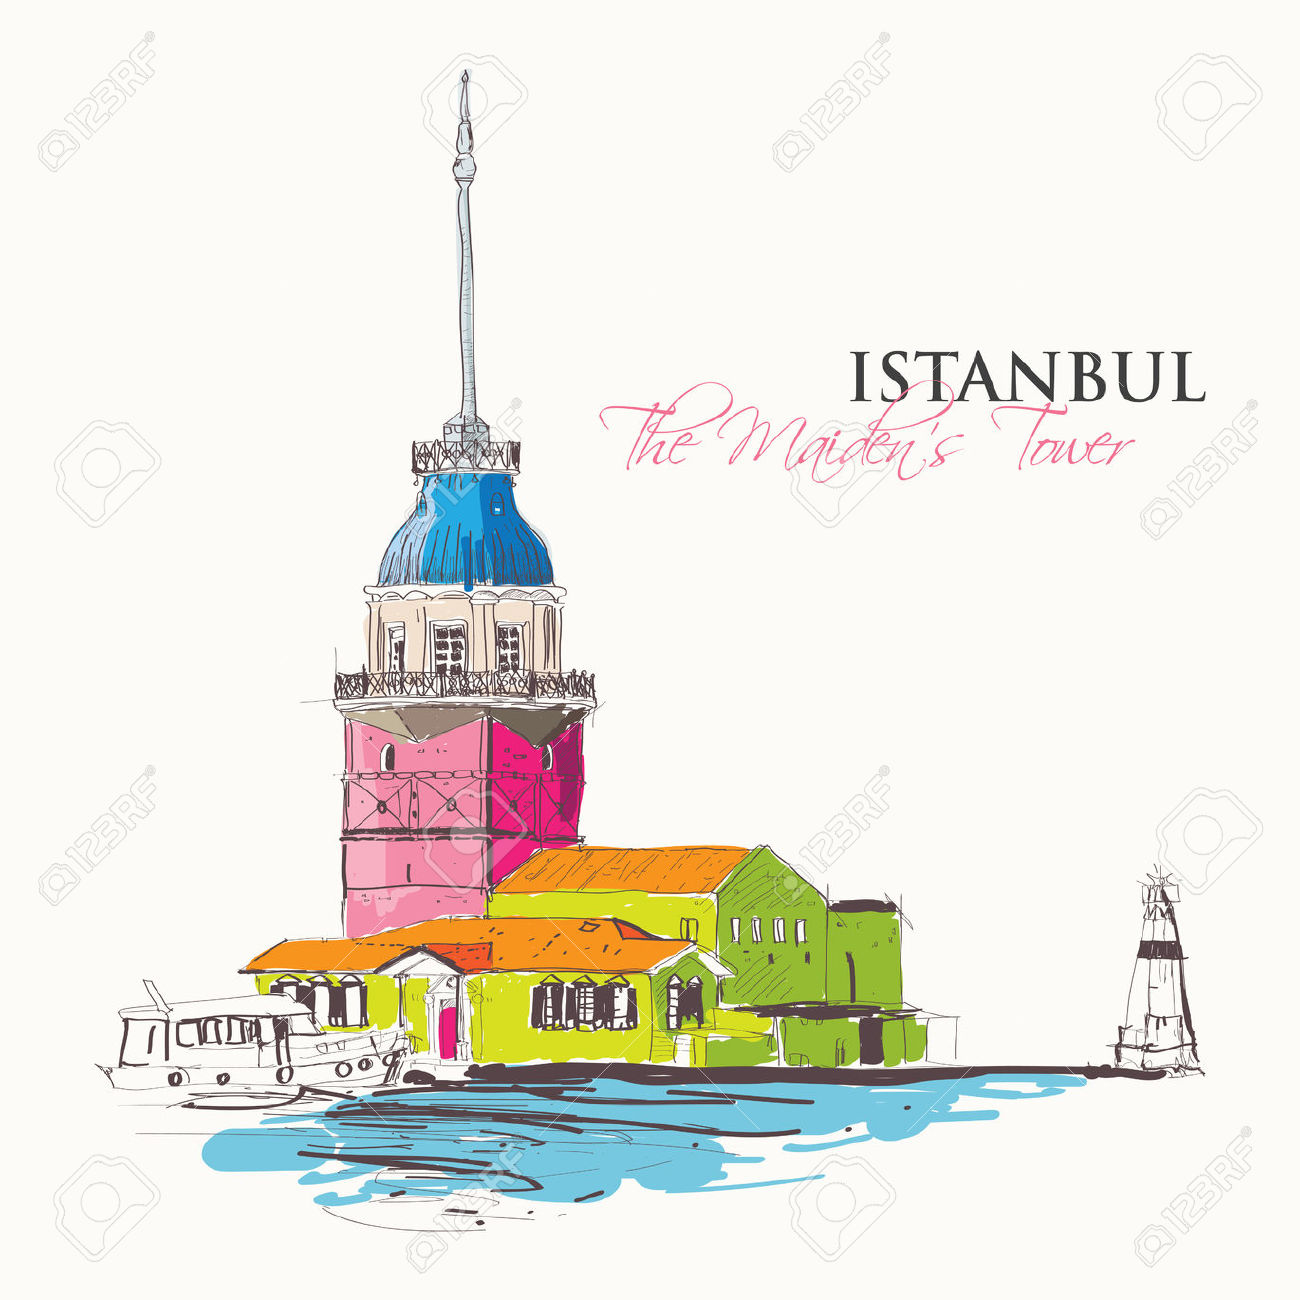 Vector Illustration Of The Maiden's Tower Or Kizkulesi, An Ancient.